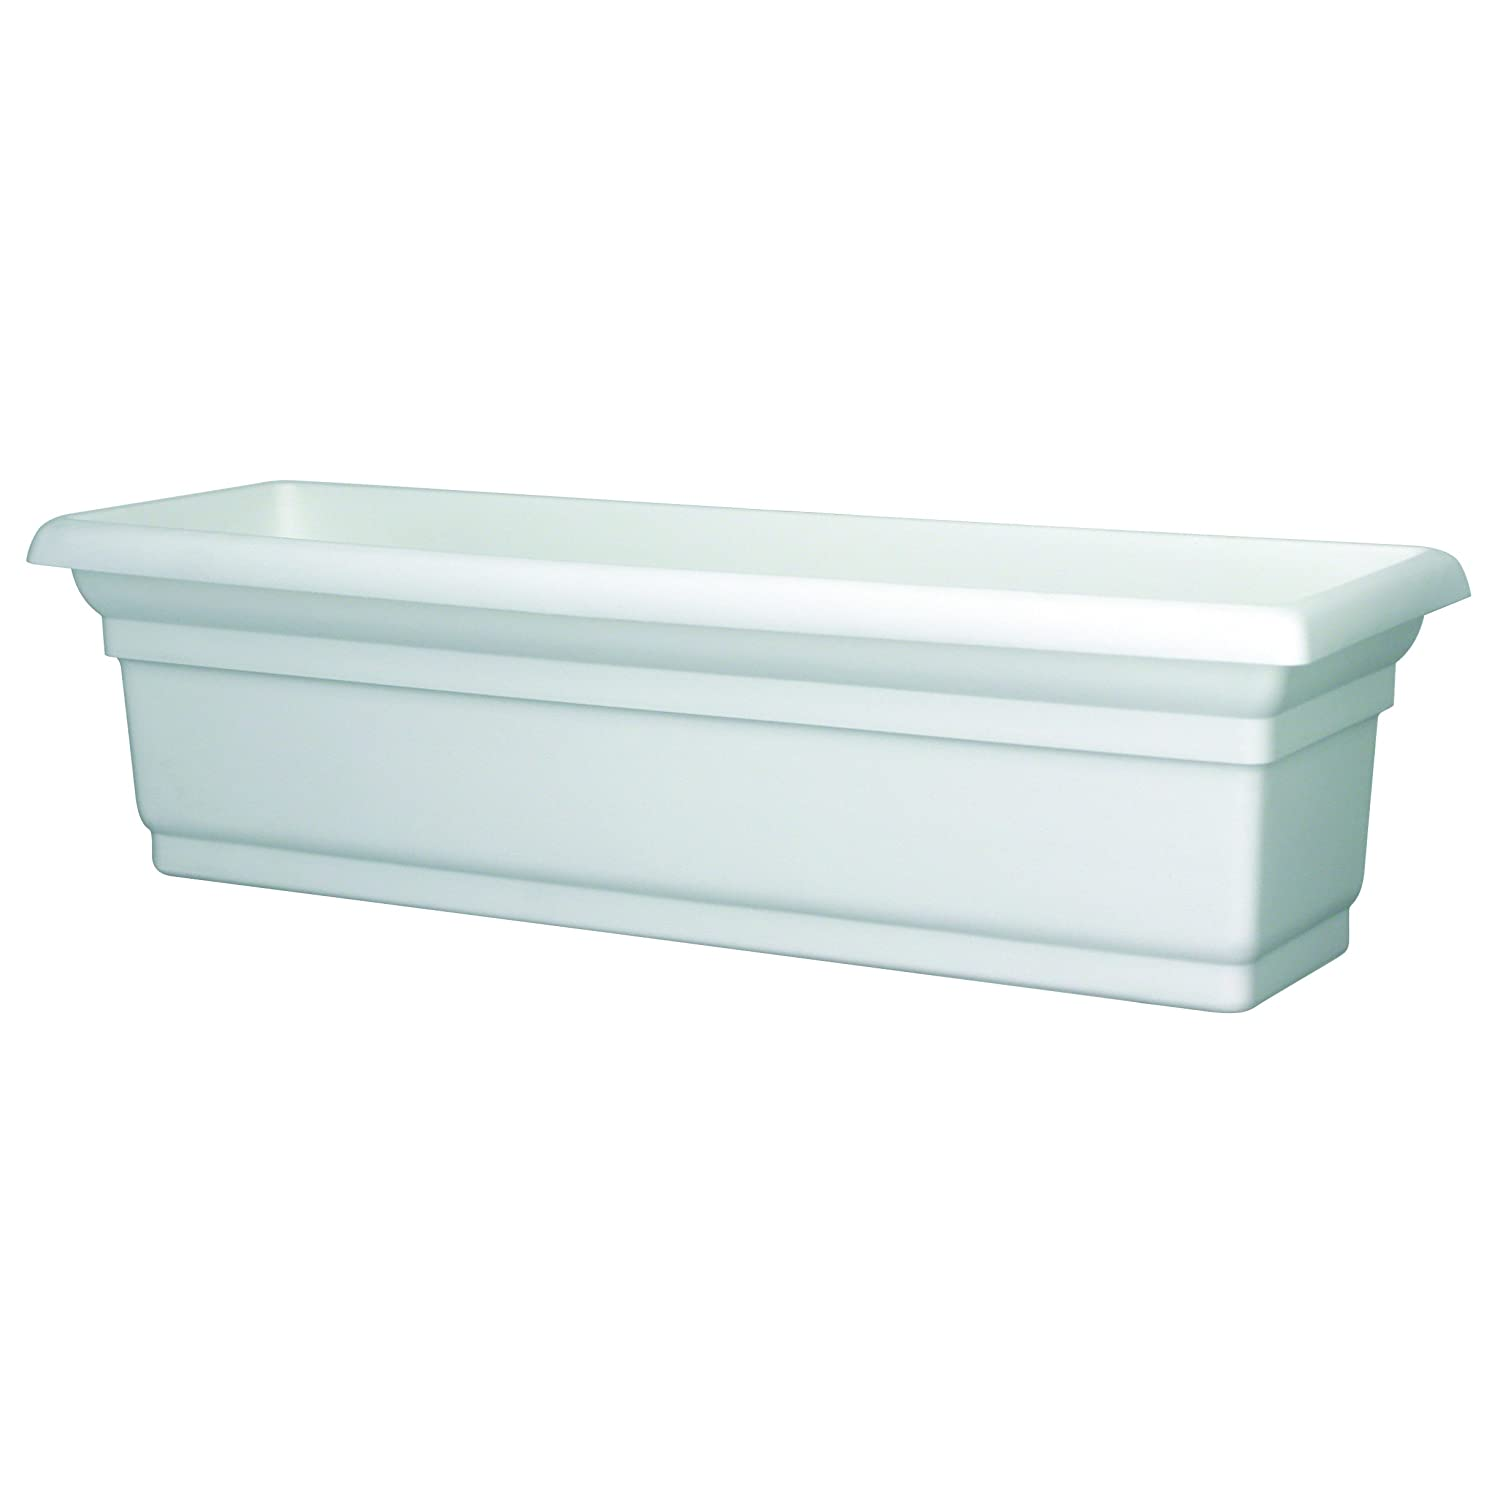 30-423009 DCN Plastics Distinction Window Box White